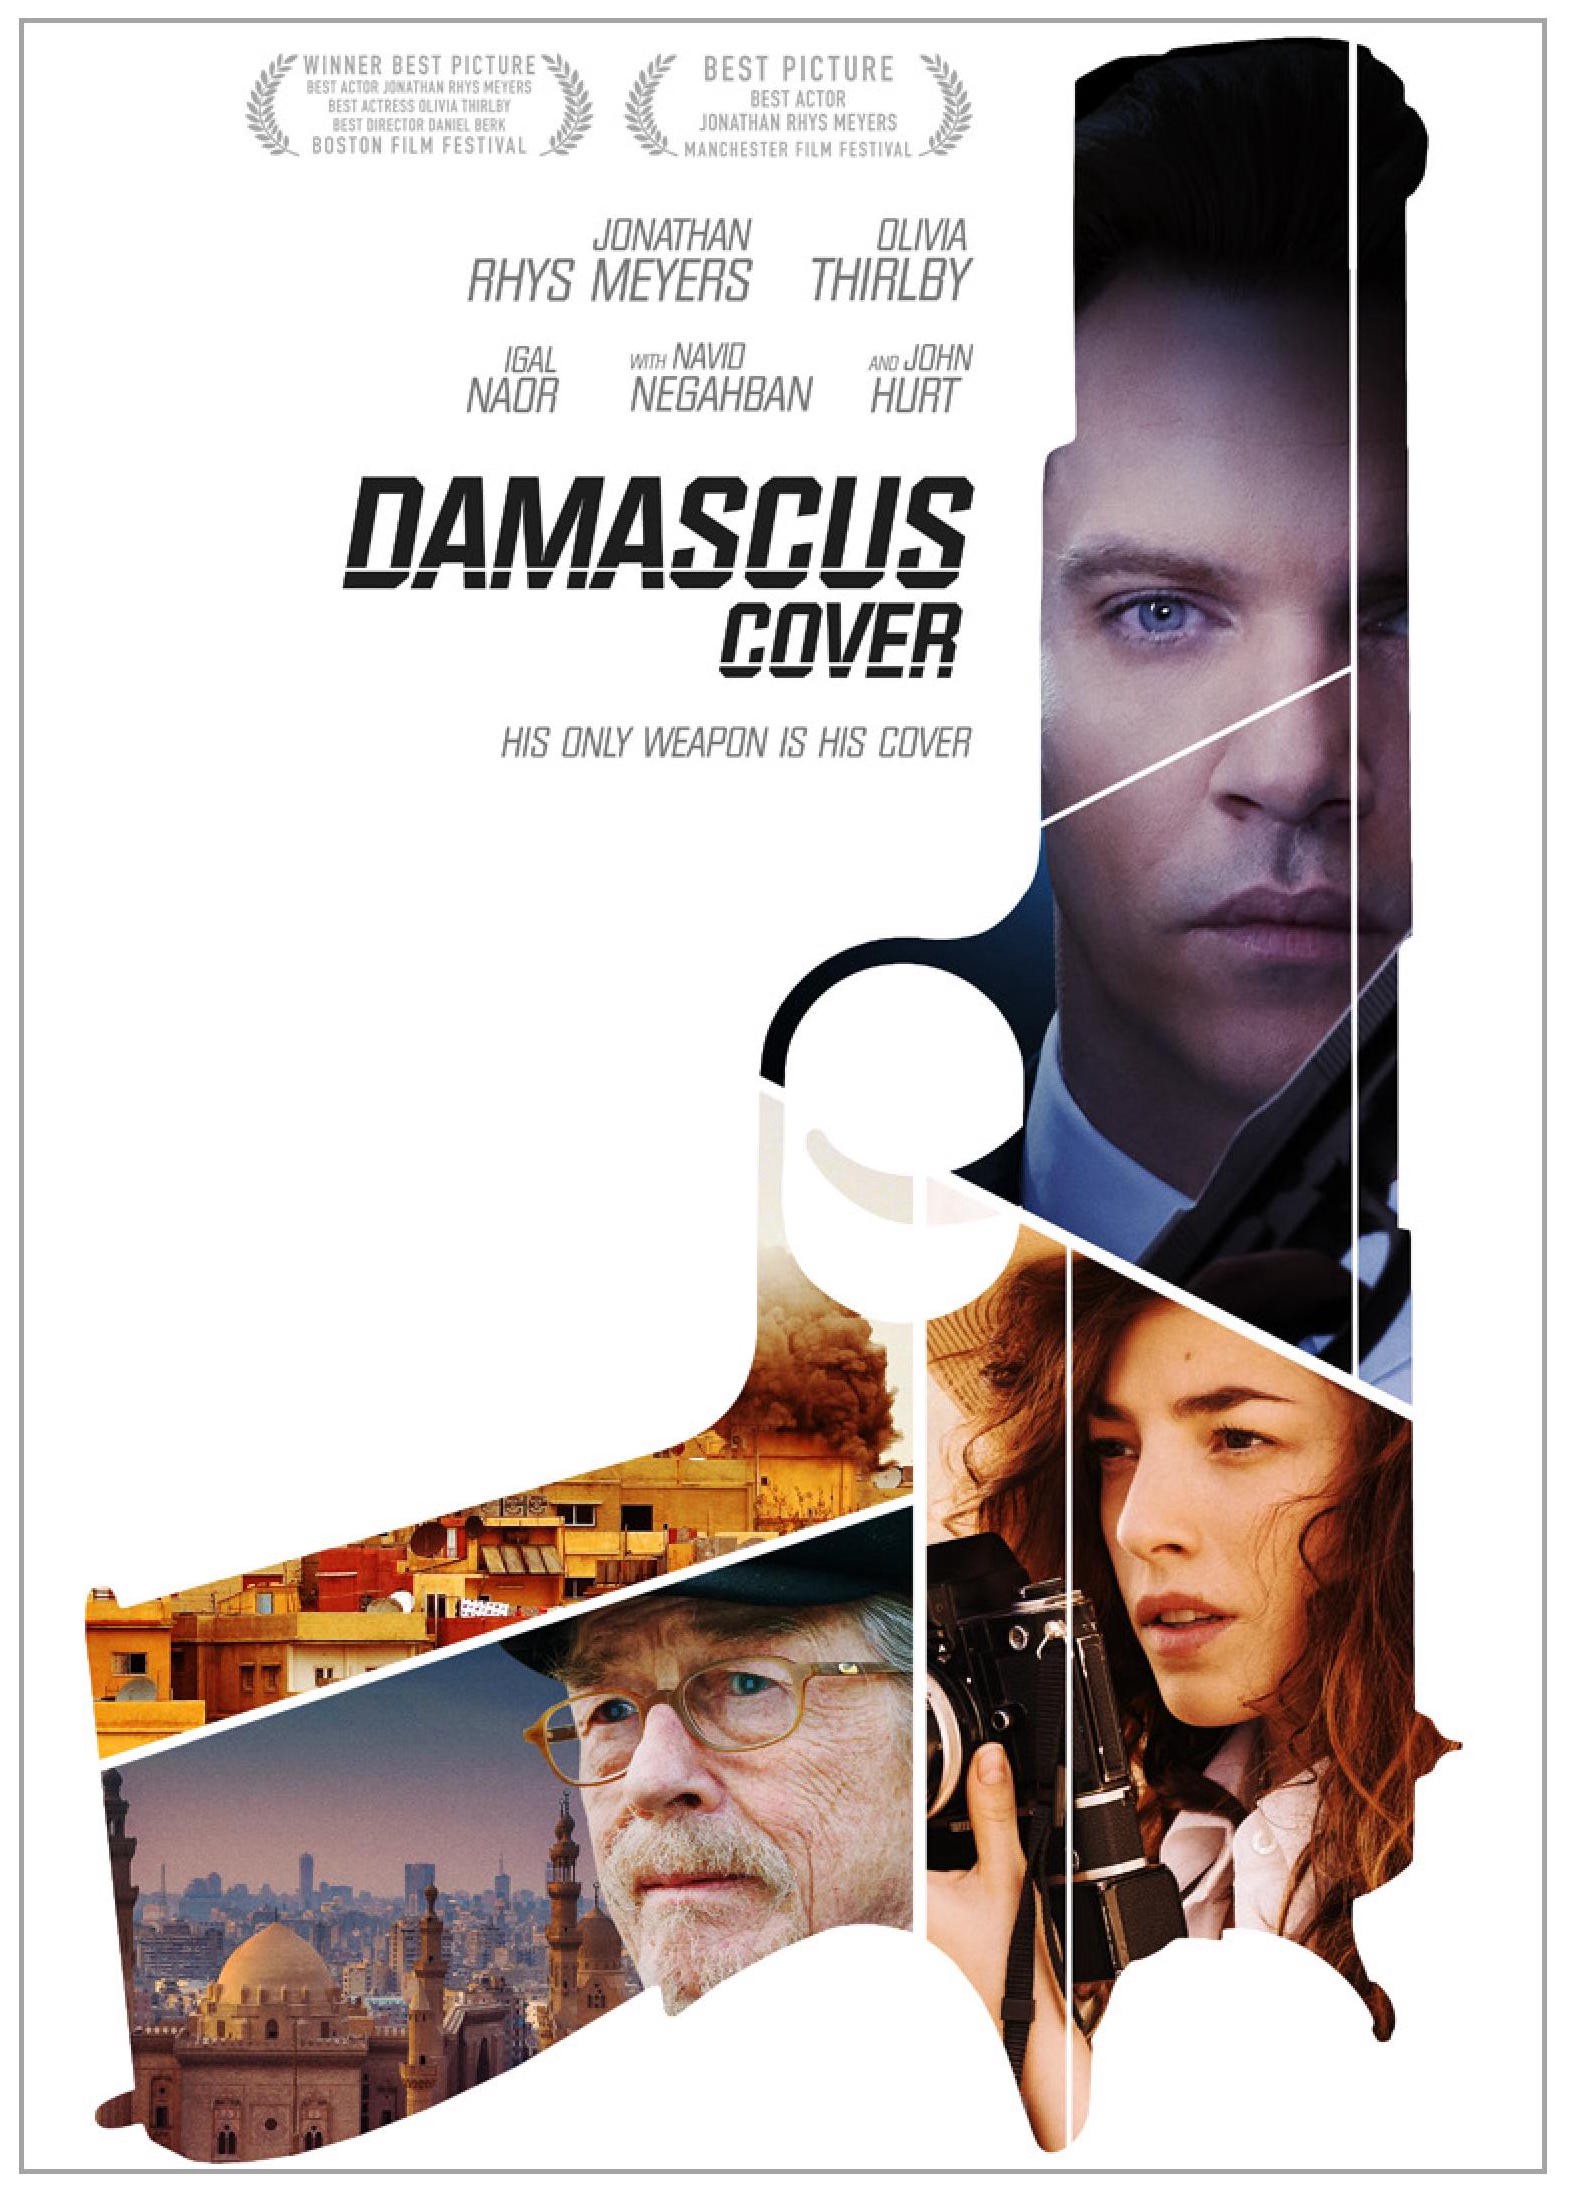 DAMASCUS COVER DEBUTS ON HULU TODAY - Howard Kaplan - Medium